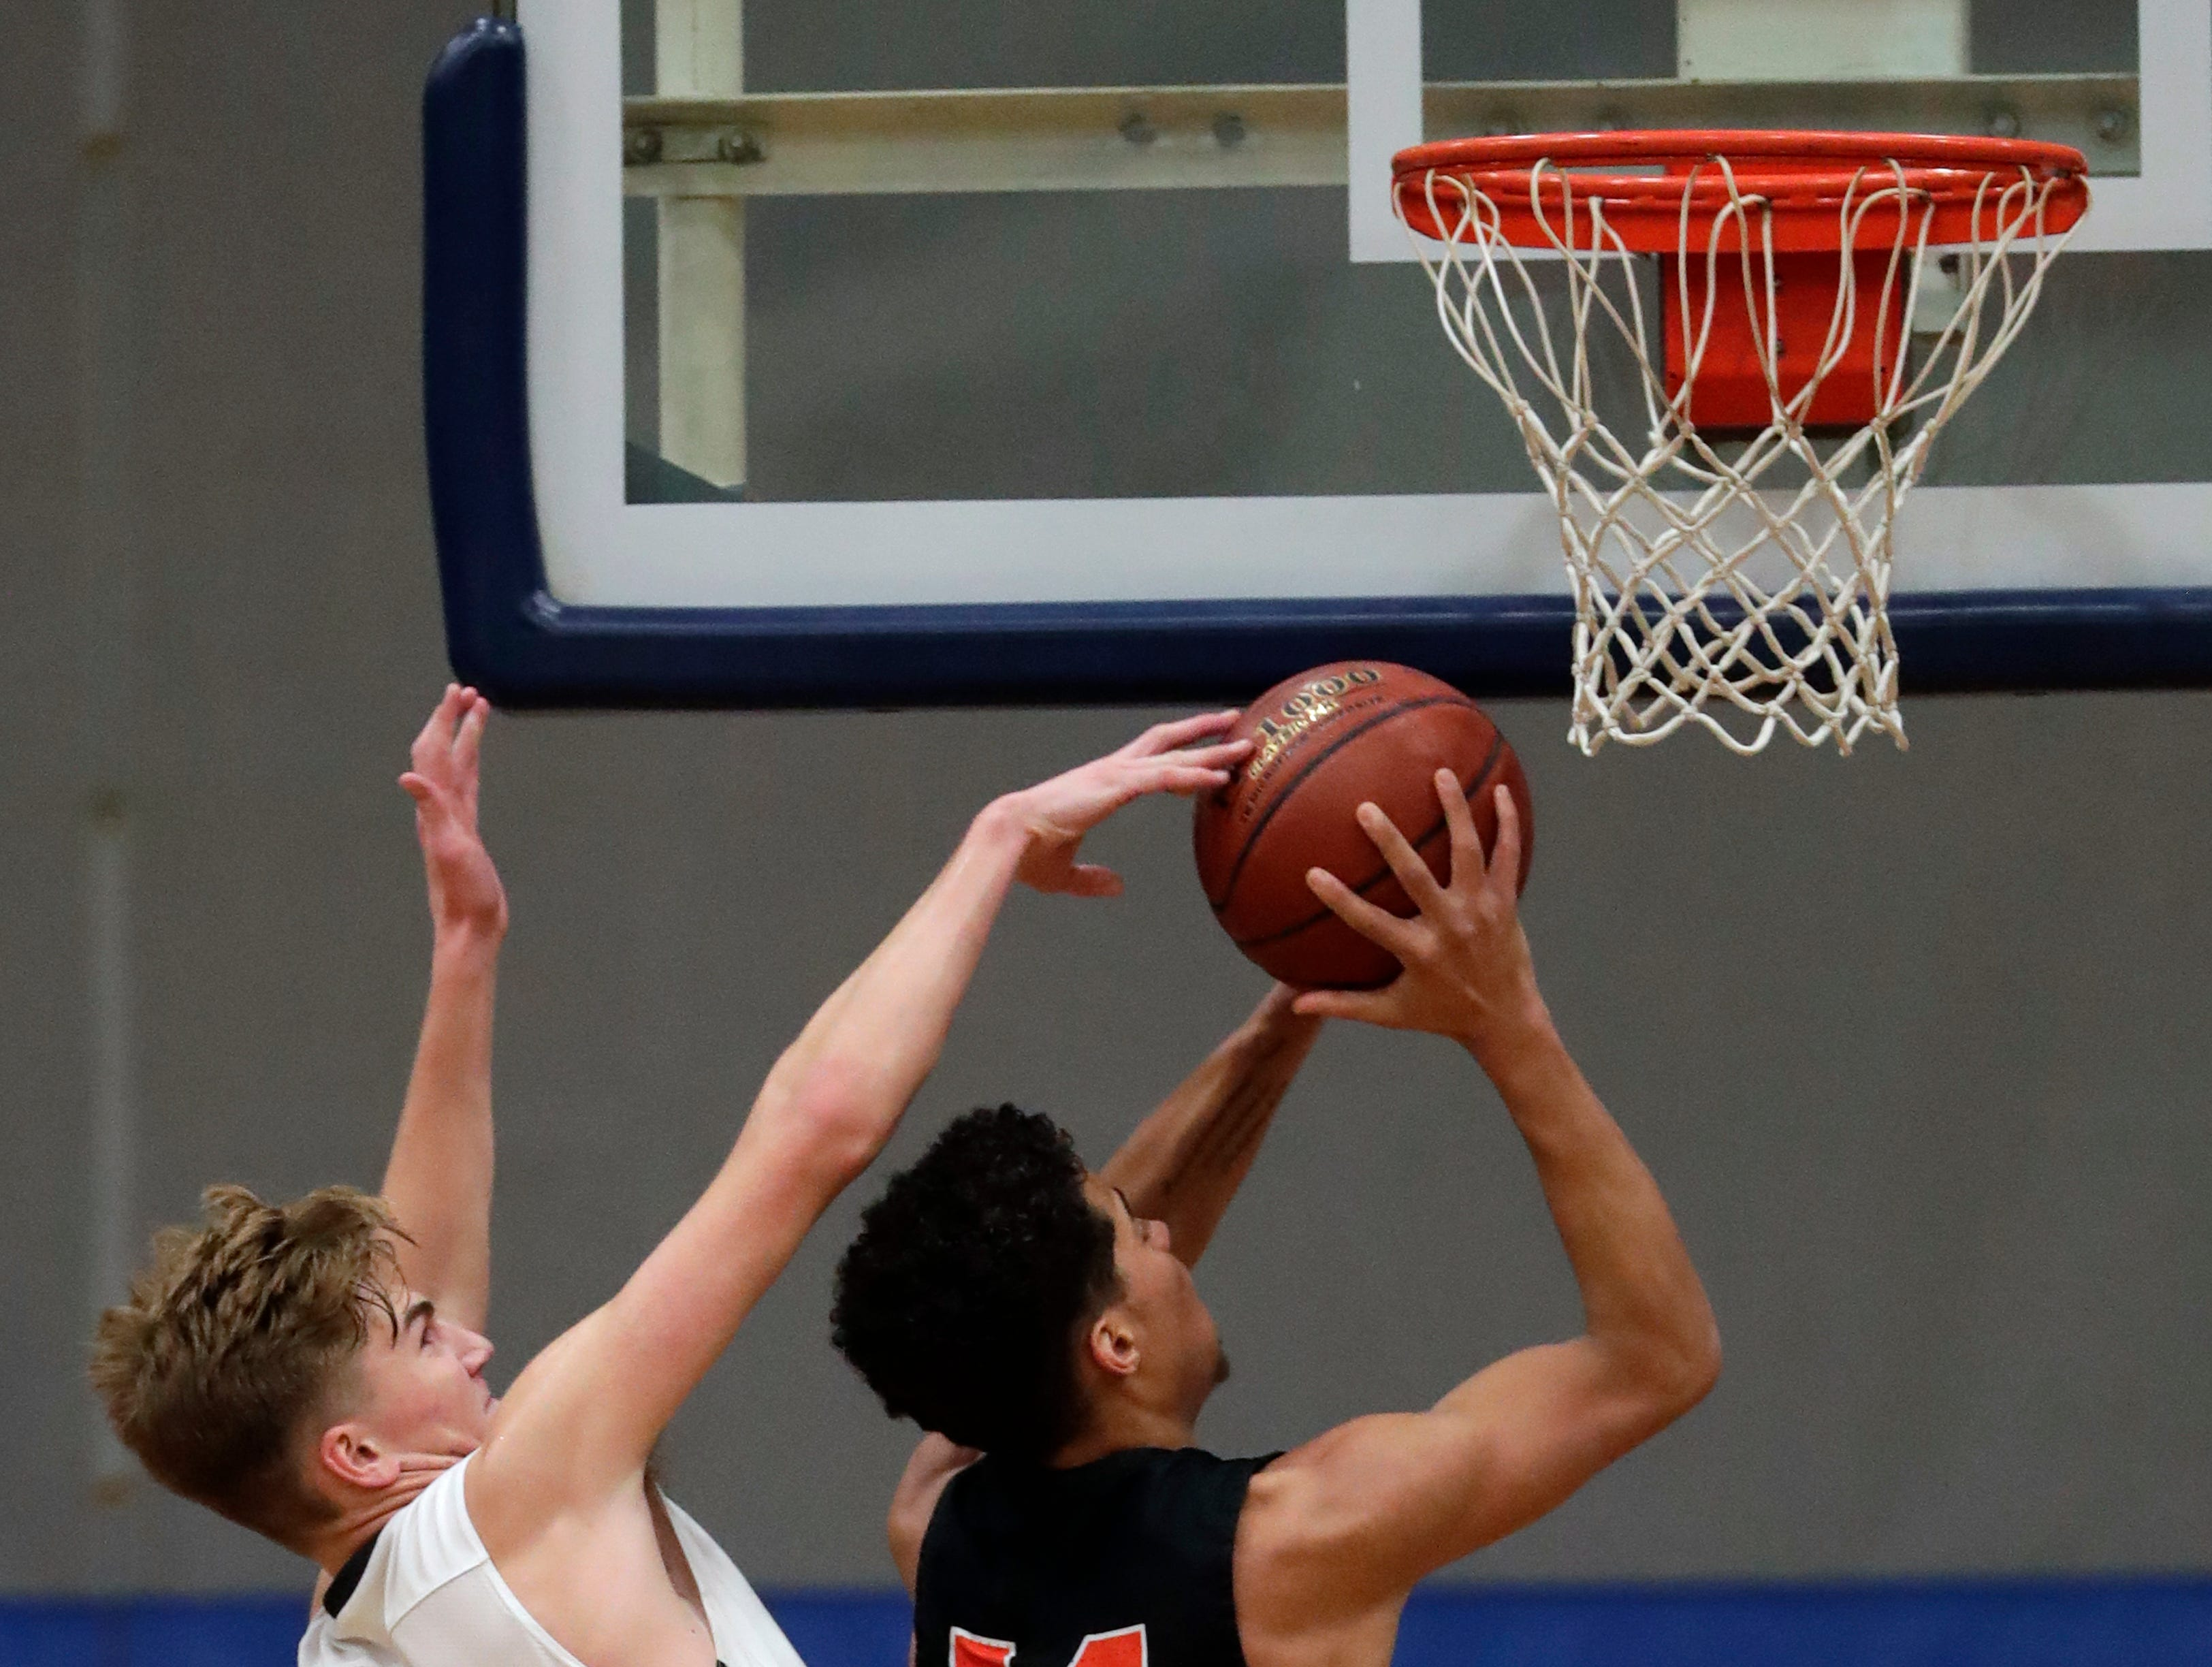 Menasha High School's Jacob Everson (4) tries to block a shot against West De Pere High School's Jovan Webb (14) during their boys basketball game Tuesday, December 11, 2018, in Menasha, Wis. Dan Powers/USA TODAY NETWORK-Wisconsin